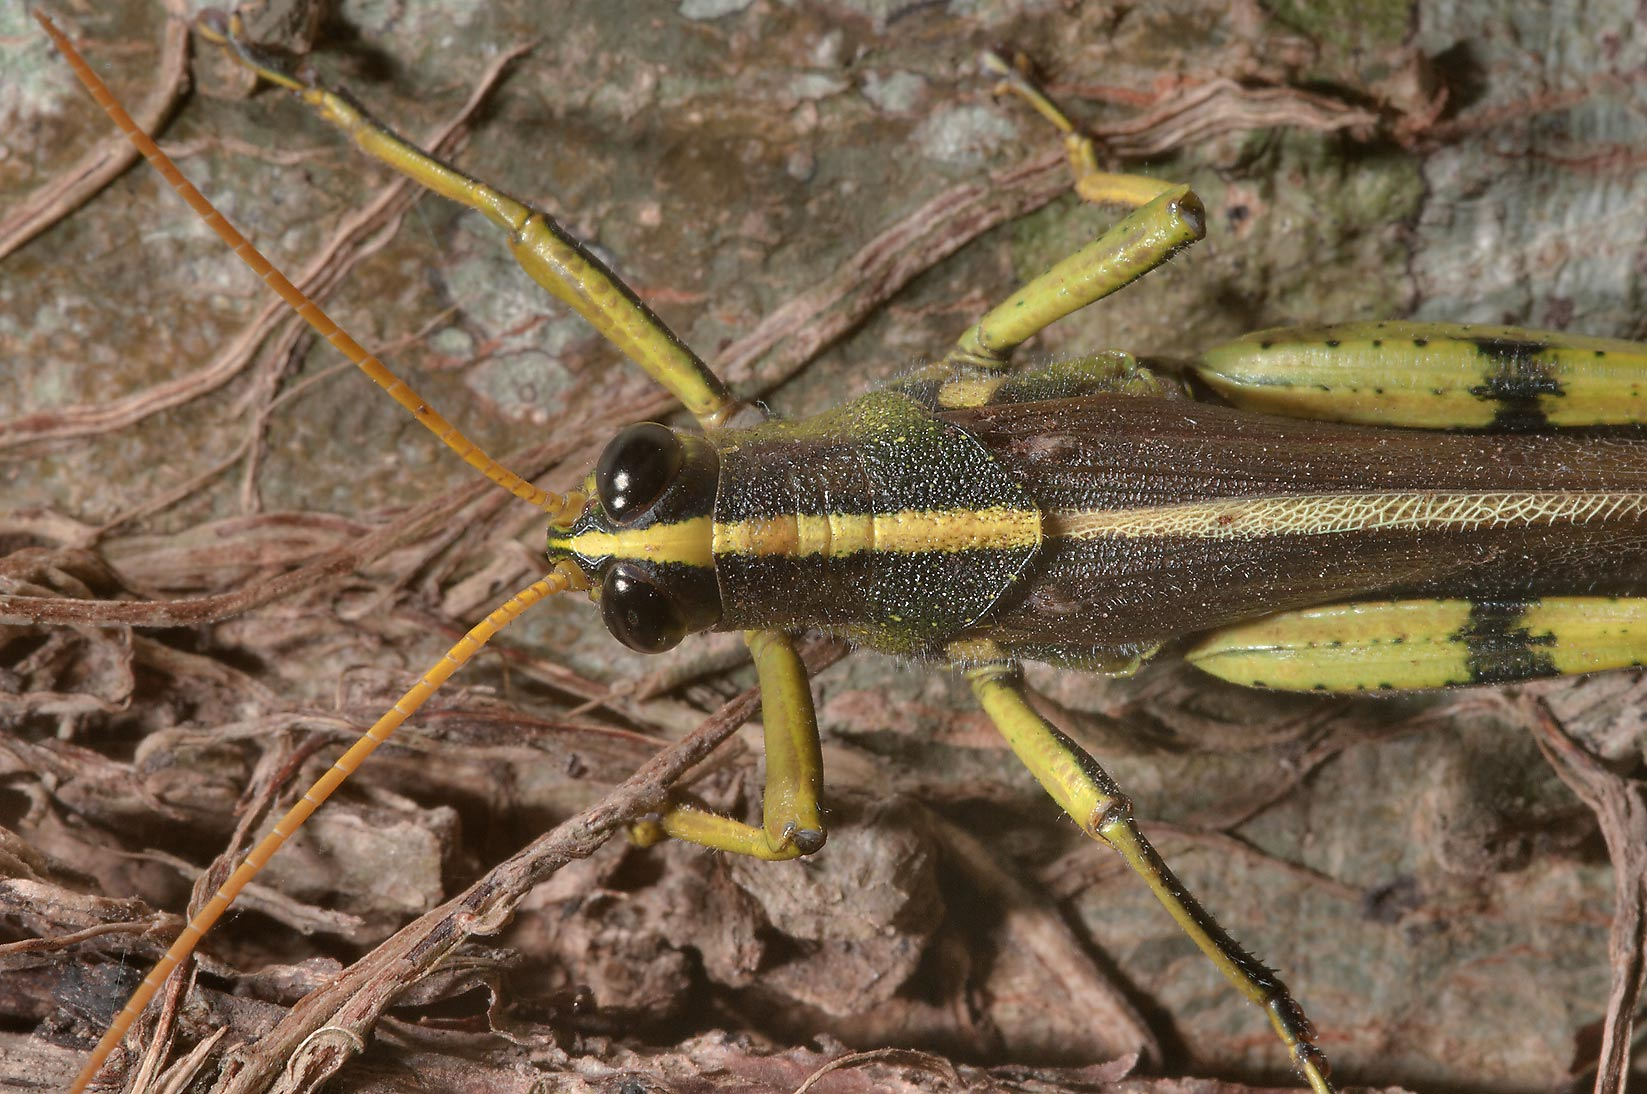 Close up of a grasshopper on a tree trunk in...State Historic Site. Washington, Texas